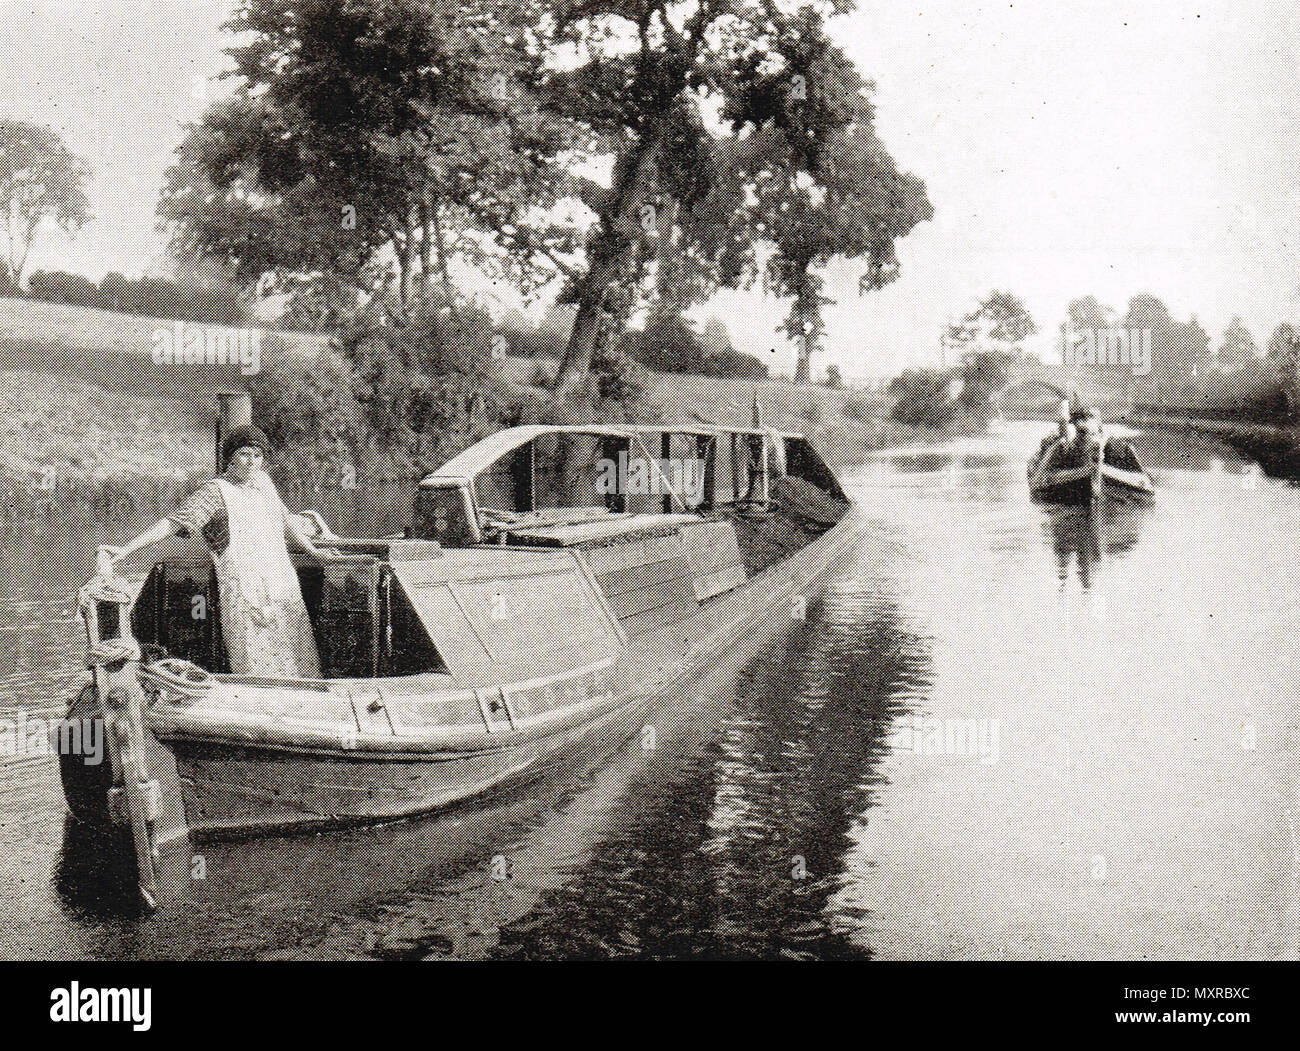 Coal barges on a Canal, 20th century - Stock Image